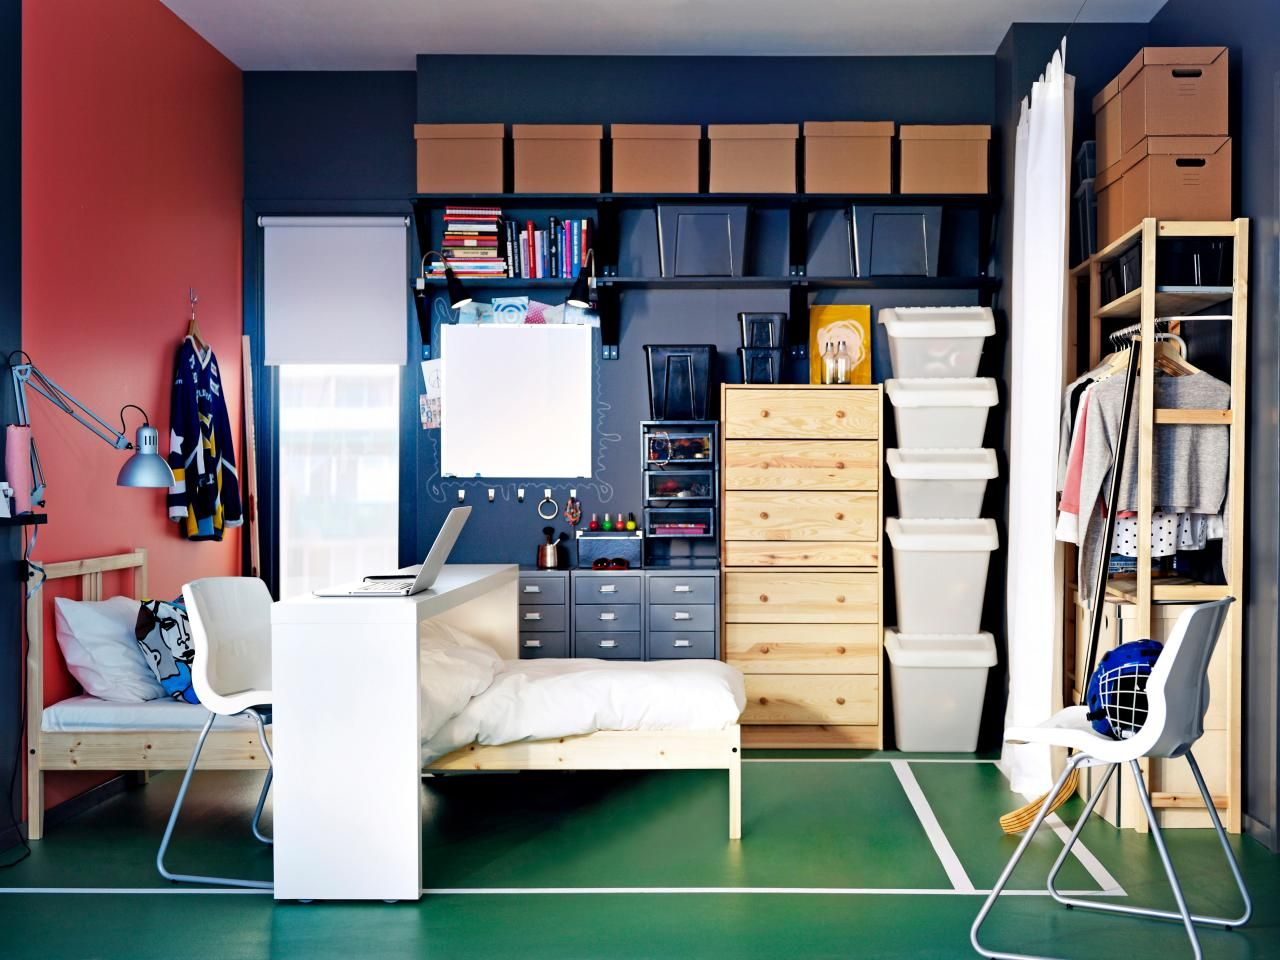 dorm - Dorm Design Ideas